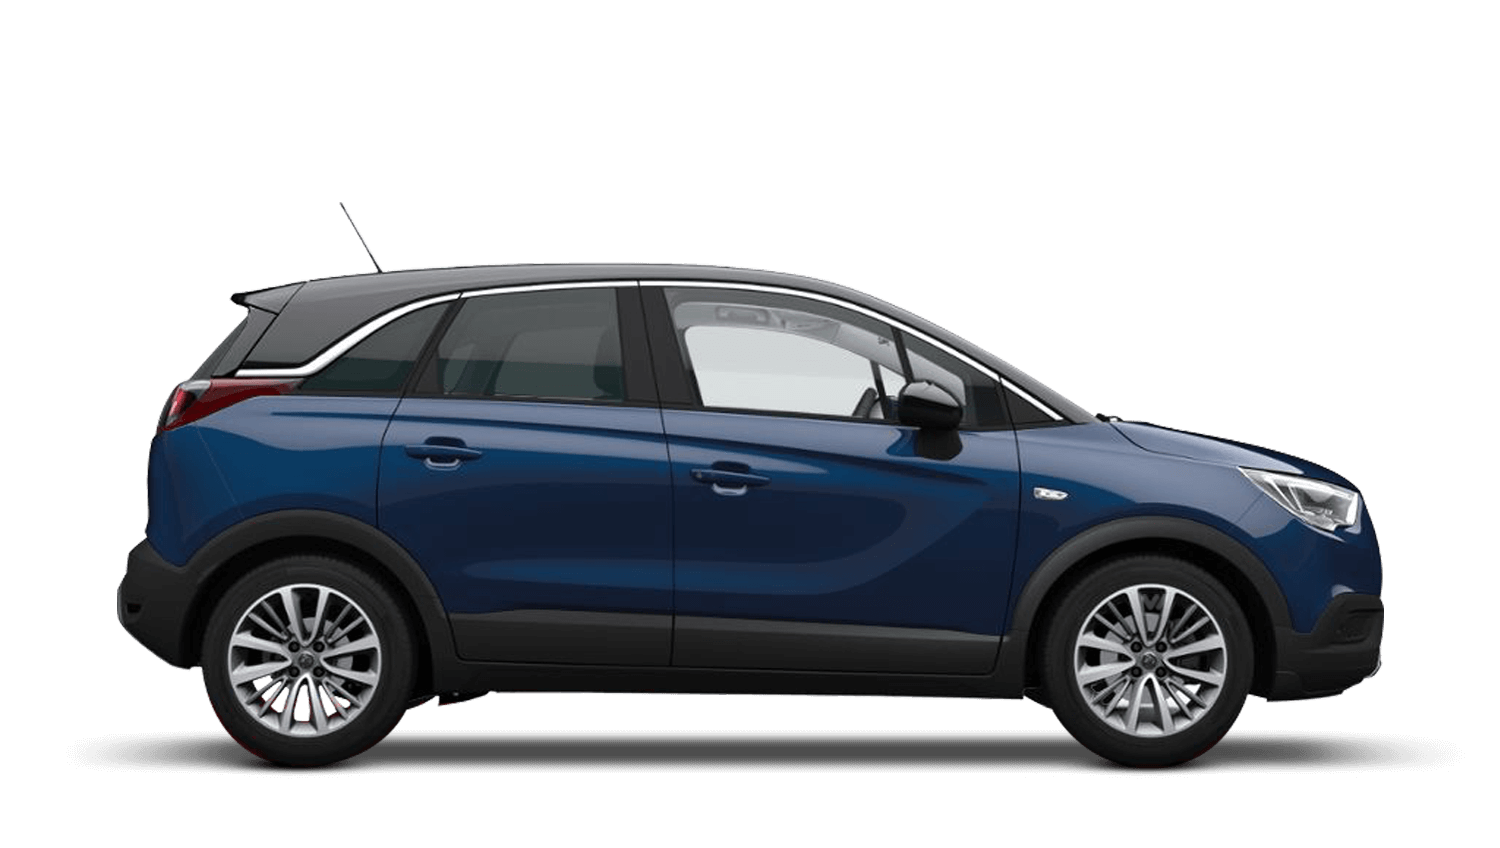 Crossland X Local Business Offers